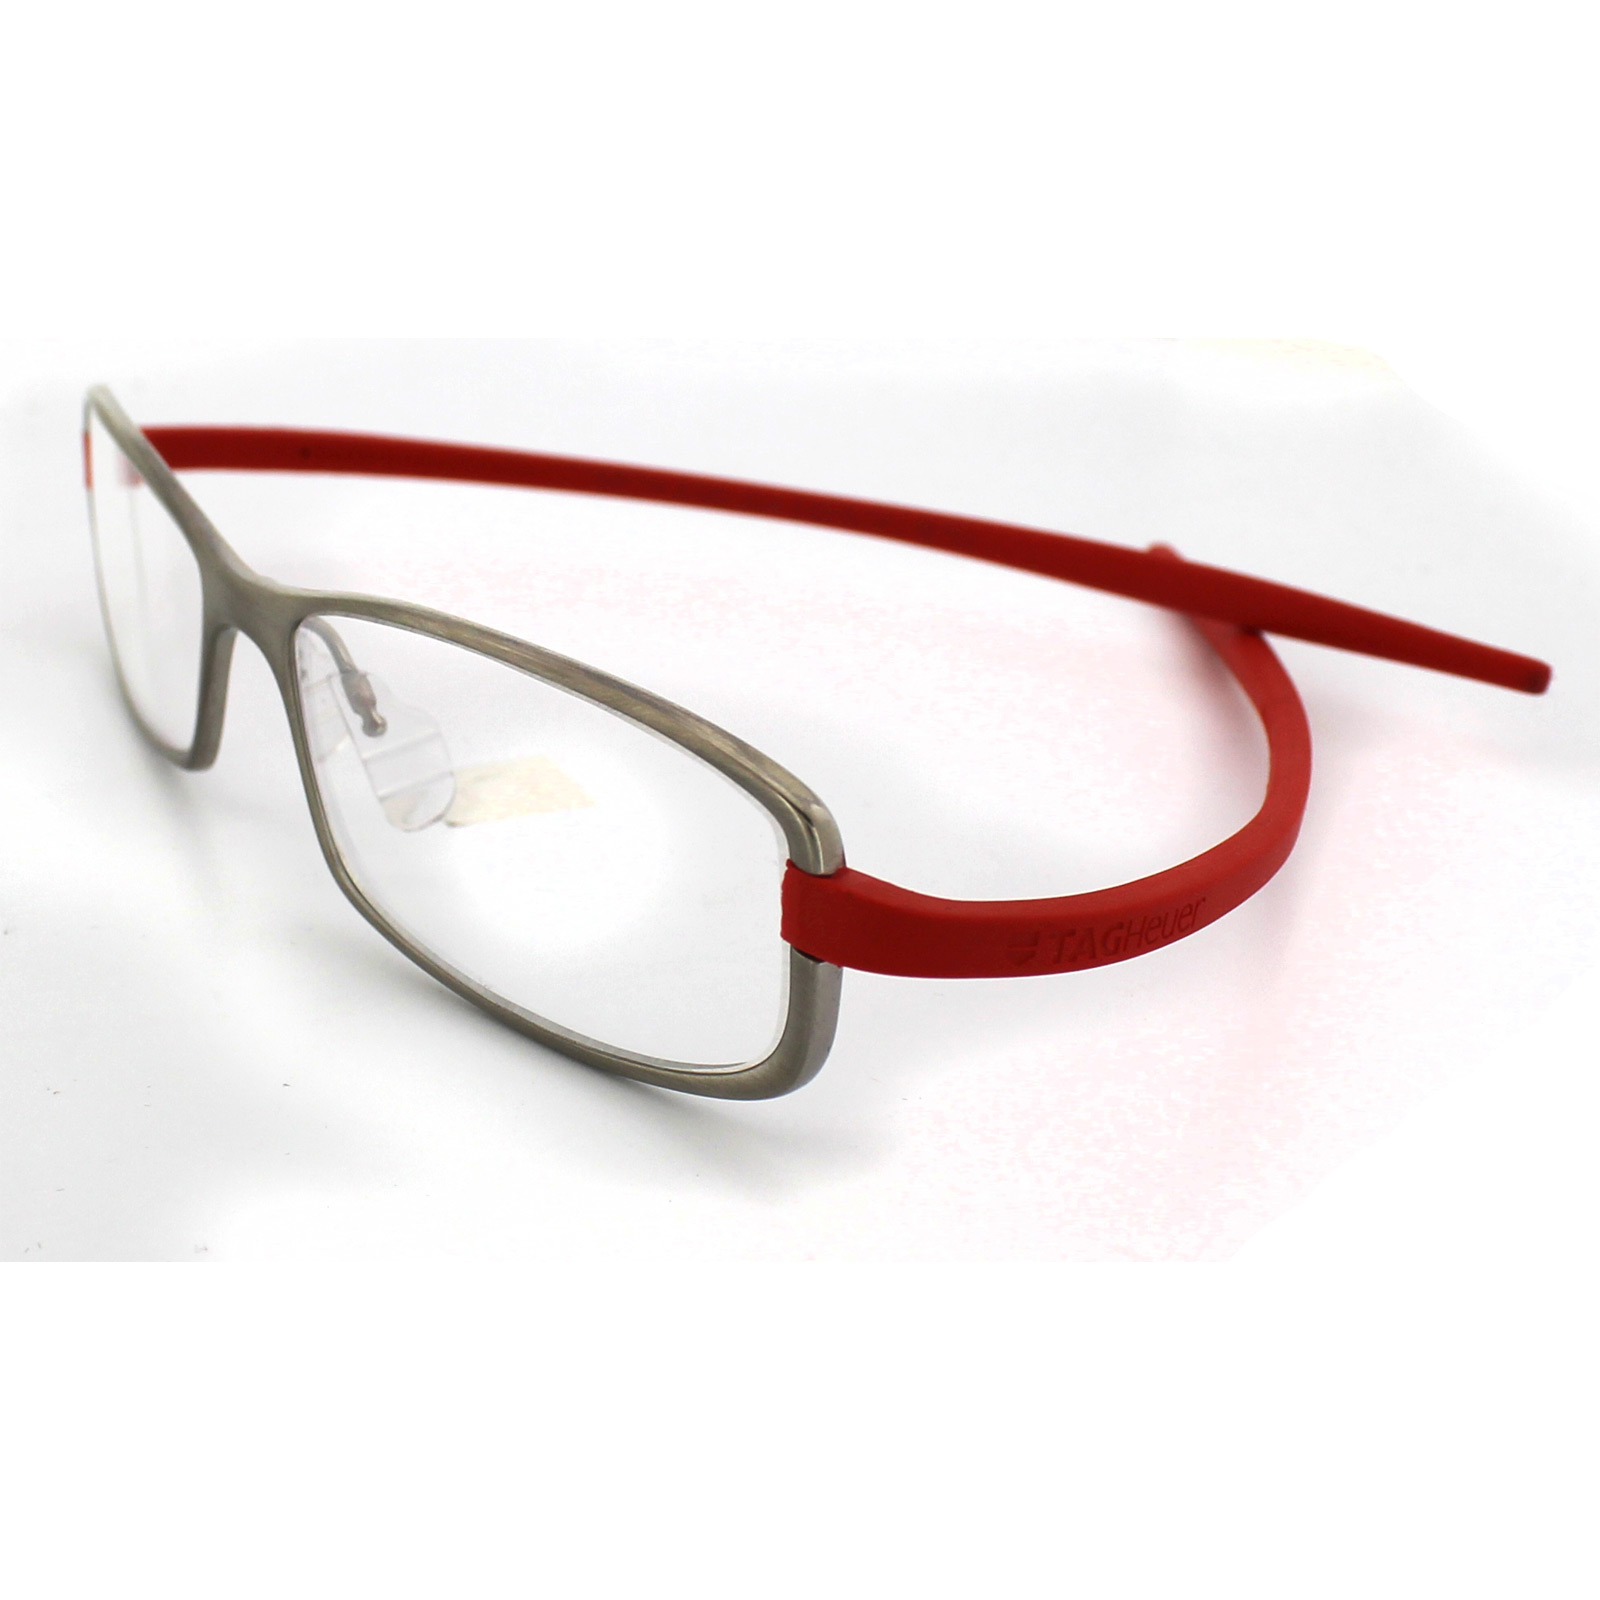 Eyeglass Frame Tags : Tag Heuer Glasses 3705 004 Ceramic Titanium Frames Red ...